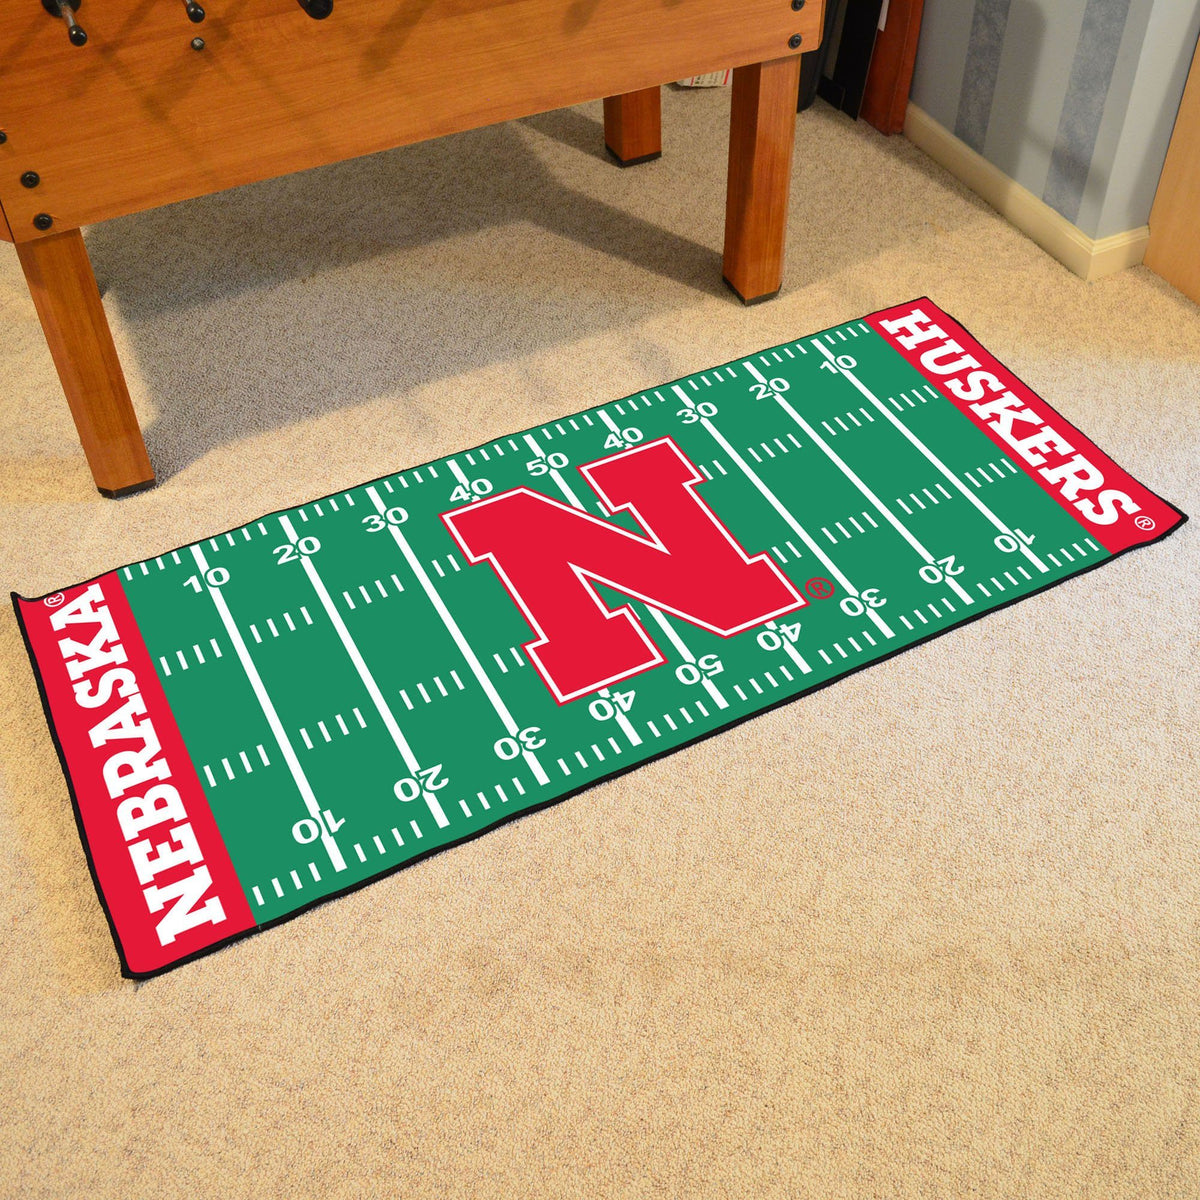 Collegiate - Football Field Runner Collegiate Mats, Rectangular Mats, Football Field Runner, Collegiate, Home Fan Mats Nebraska